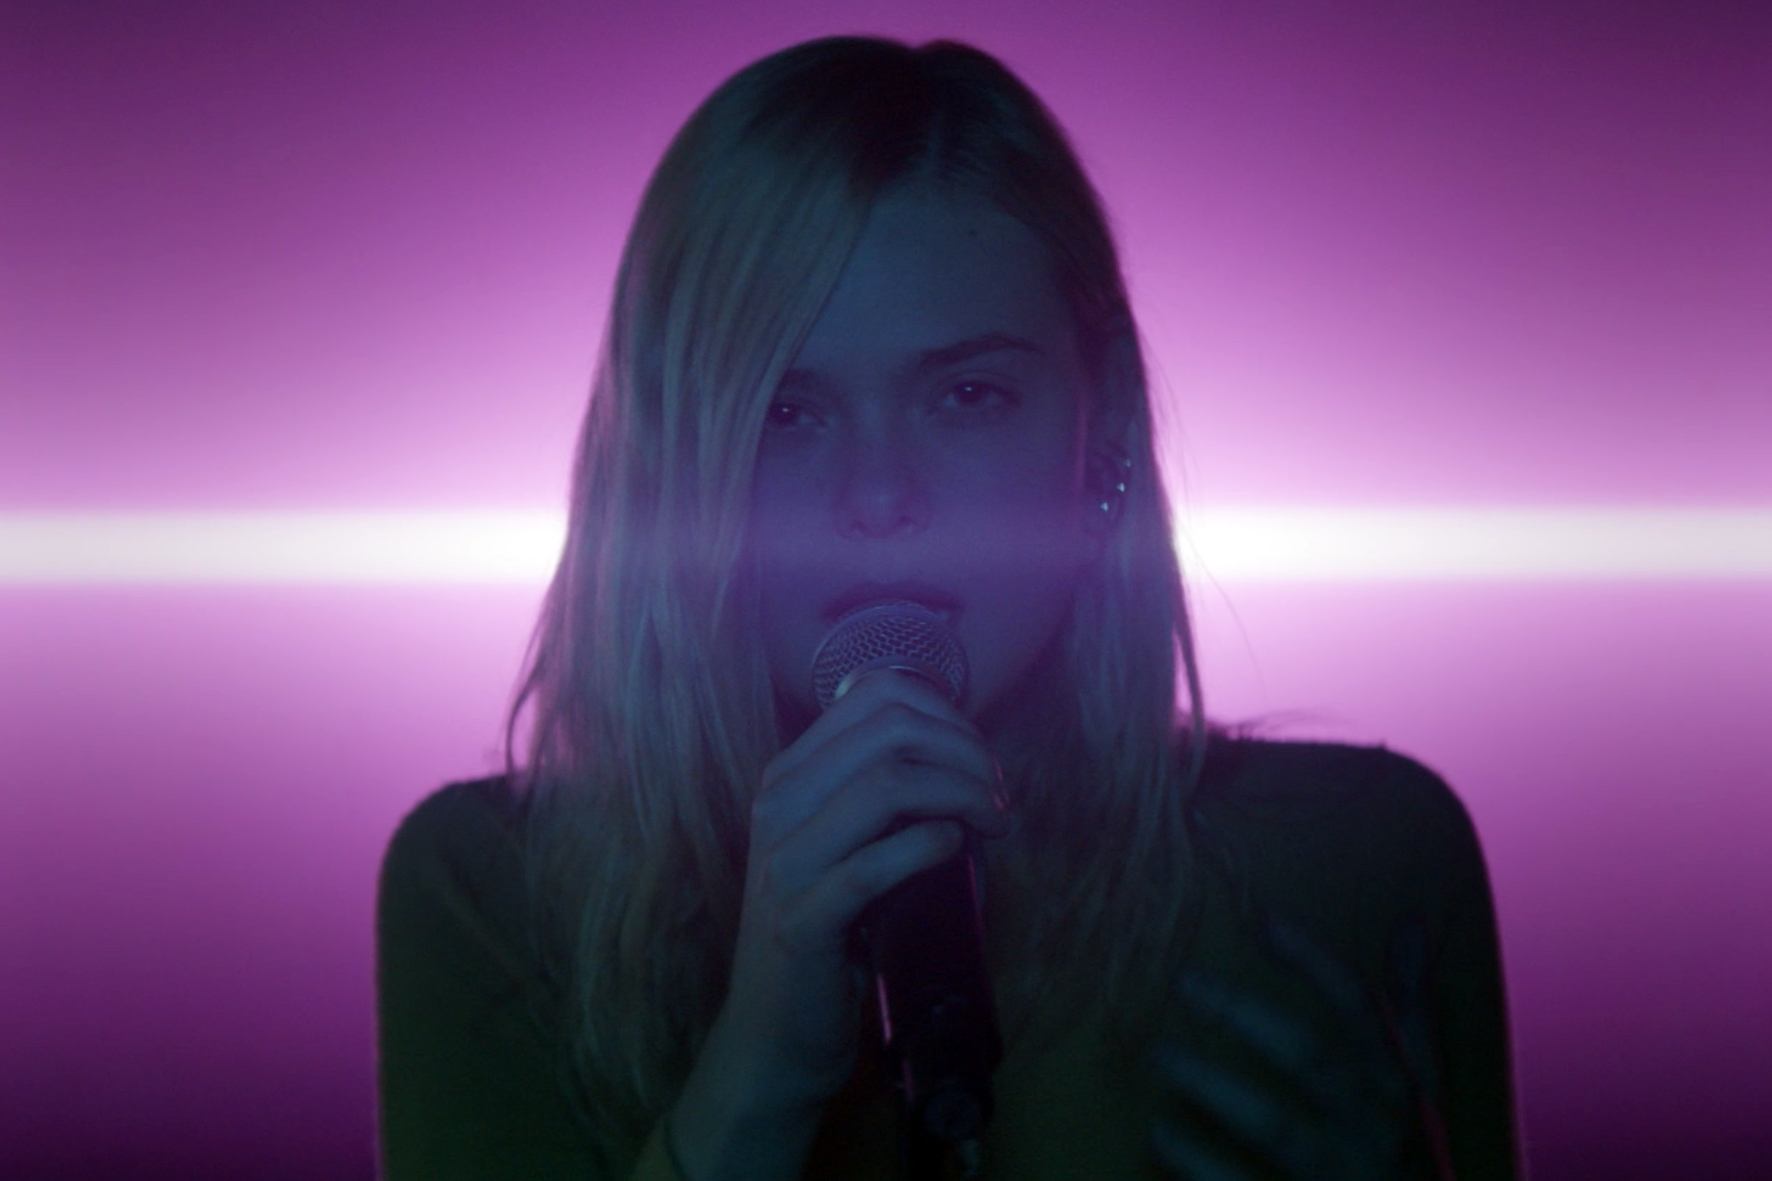 Watch Elle Fanning Sing Ellie Goulding's 'Lights' in New 'Teen Spirit' Trailer